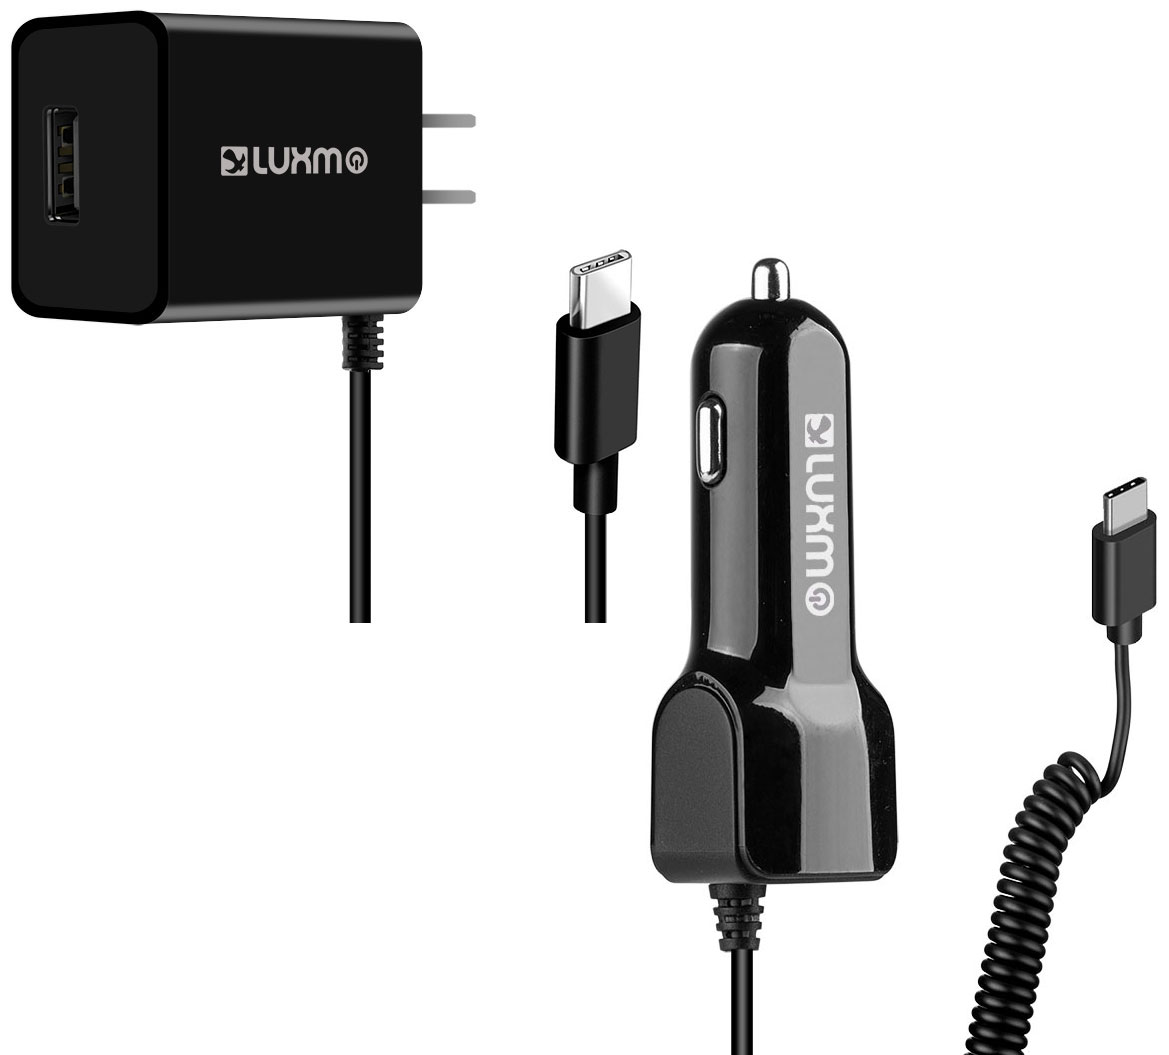 Huawei P9 USB Type-C Car Home Charger Pack Extra USB Black